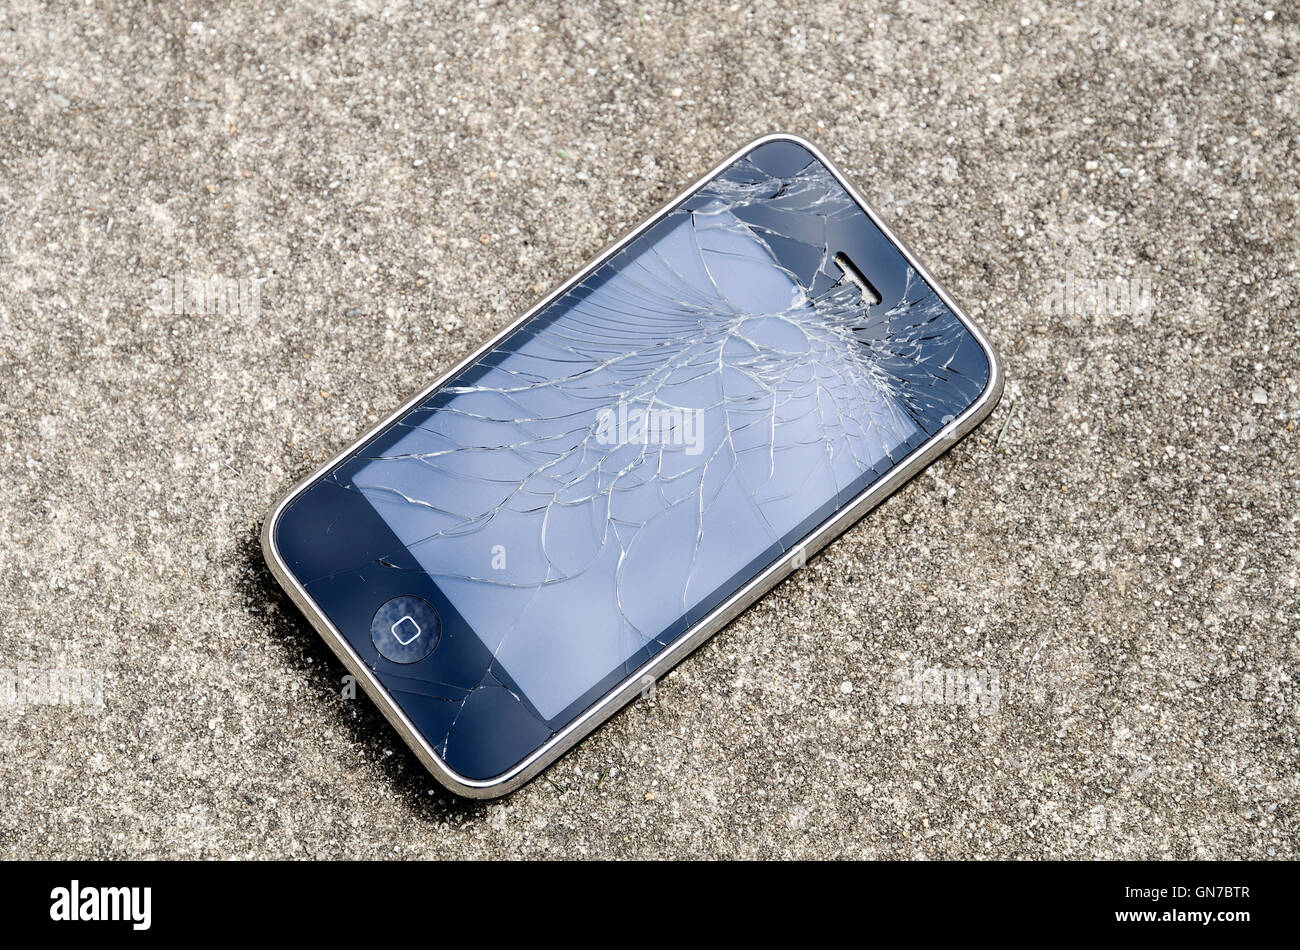 A ' Blackberry smart phone ' with a shattered screen - Stock Image